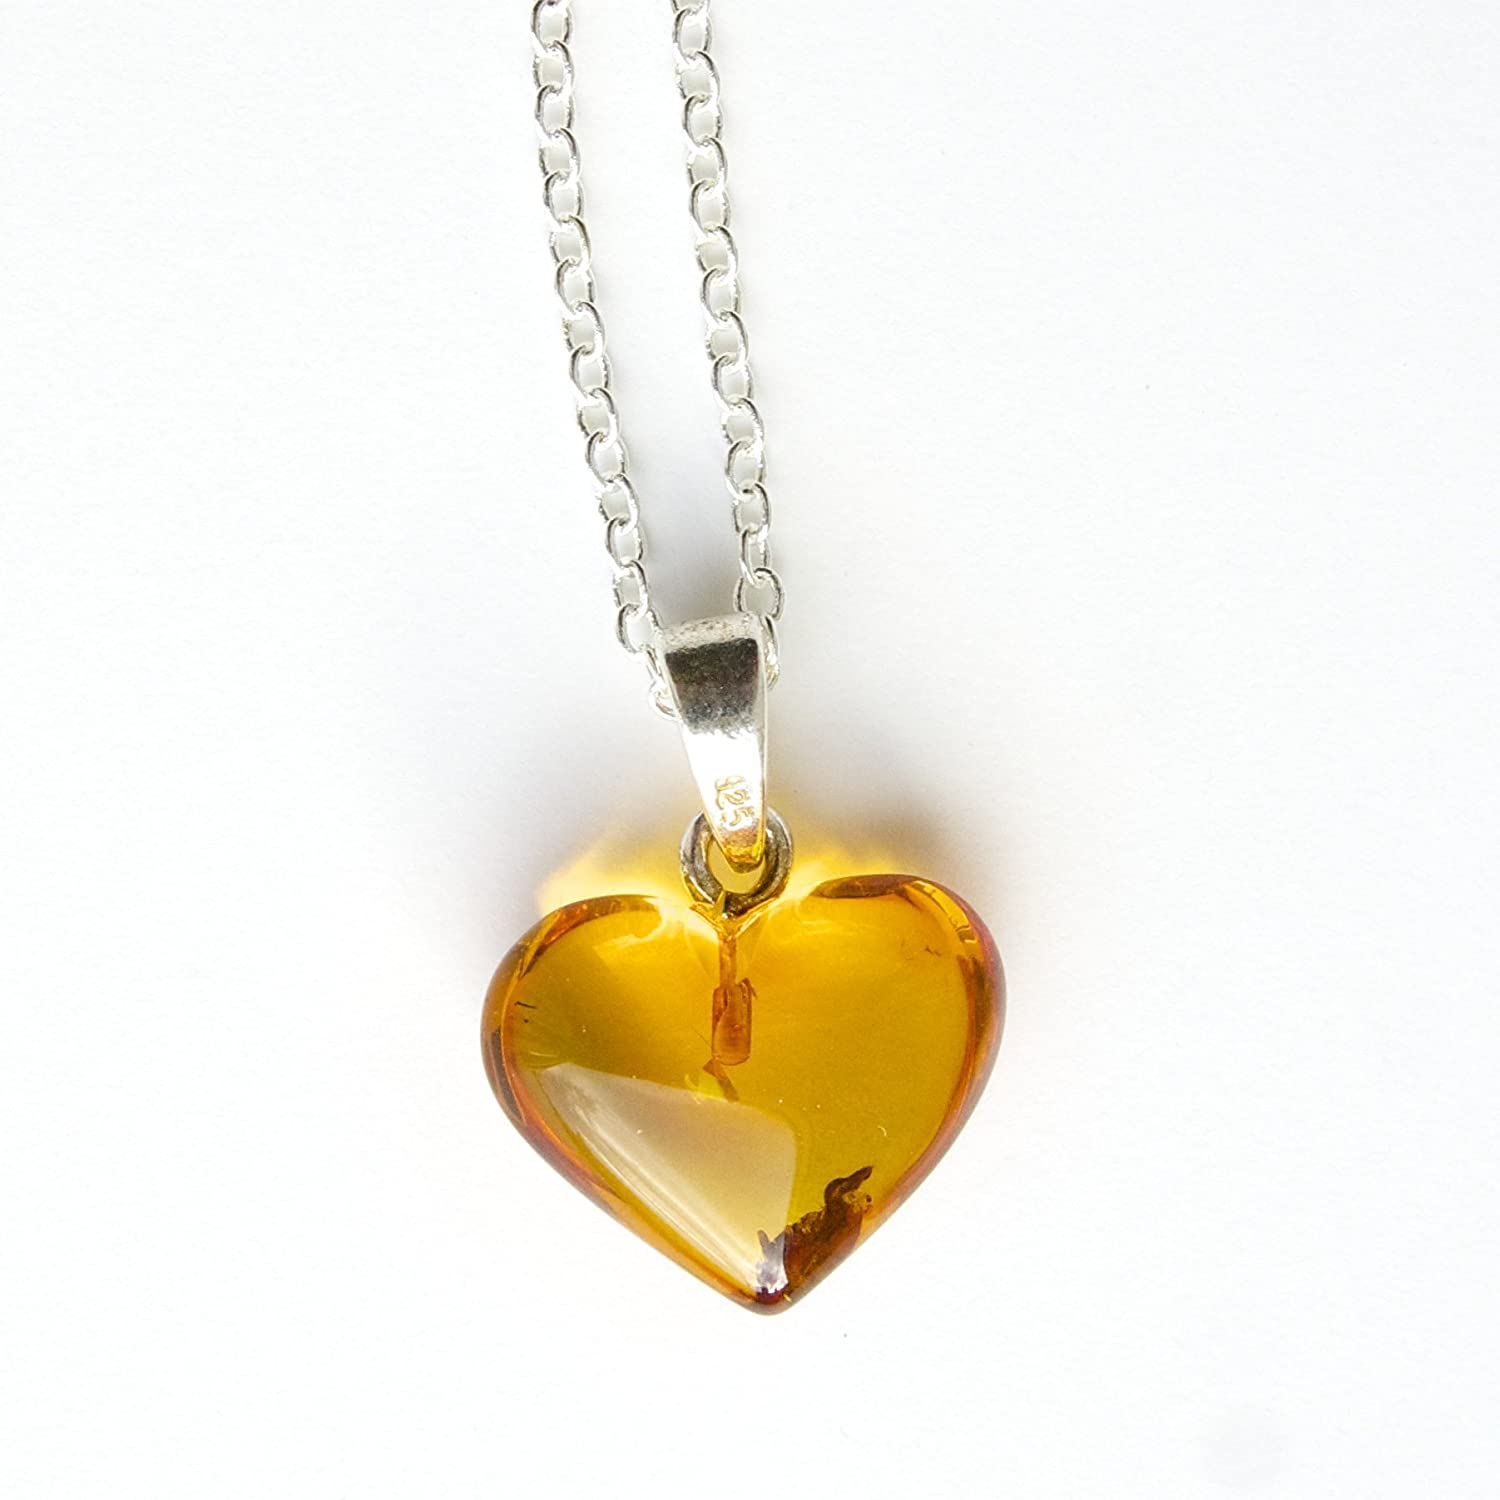 Sterling Silver 925 18 inch Chain Necklace with Amber Heart Pendant